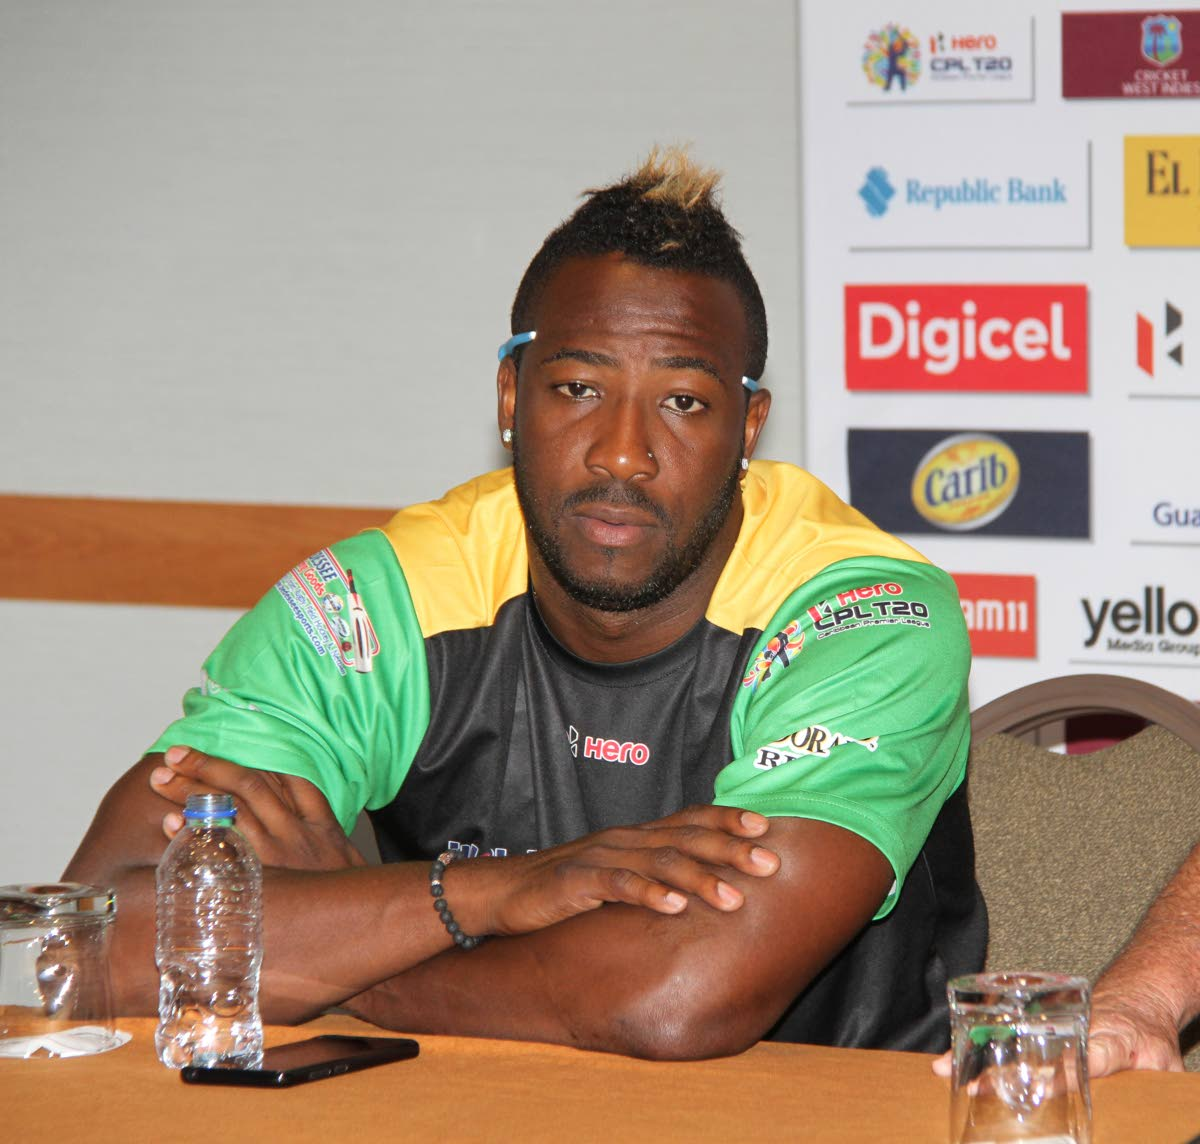 Jamaica Tallawahs captain Andre Russell addresses the media during a press conference yesterday ahead of today's Caribbean Premier League match against the Trinbago Knight Riders.